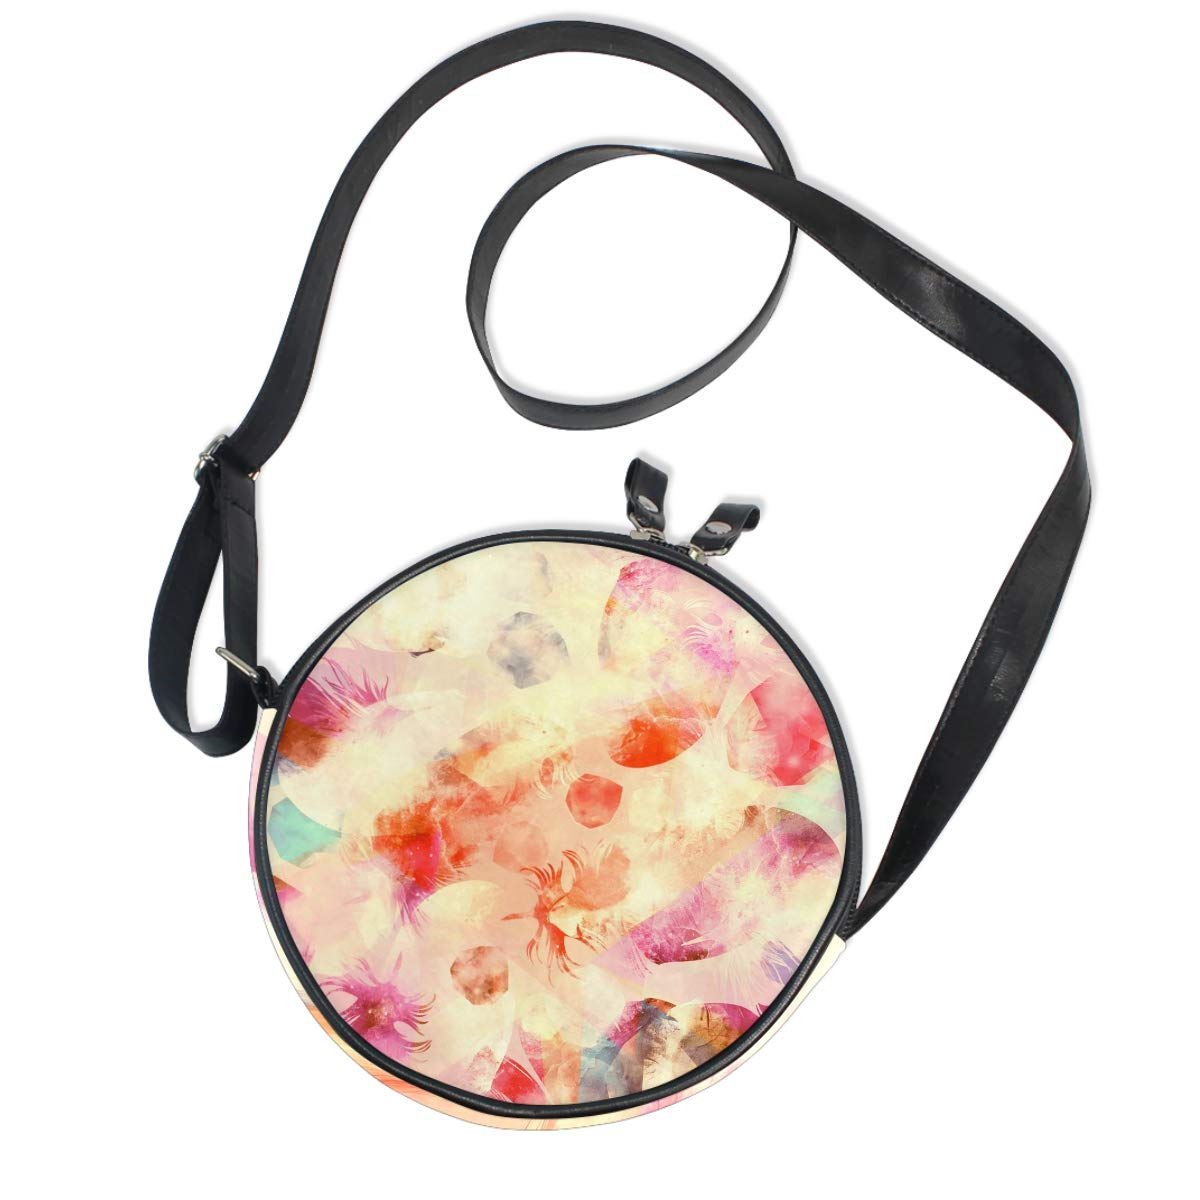 Feathers And Gems Small Round Canvas Crossbody Messenger Bags for Women